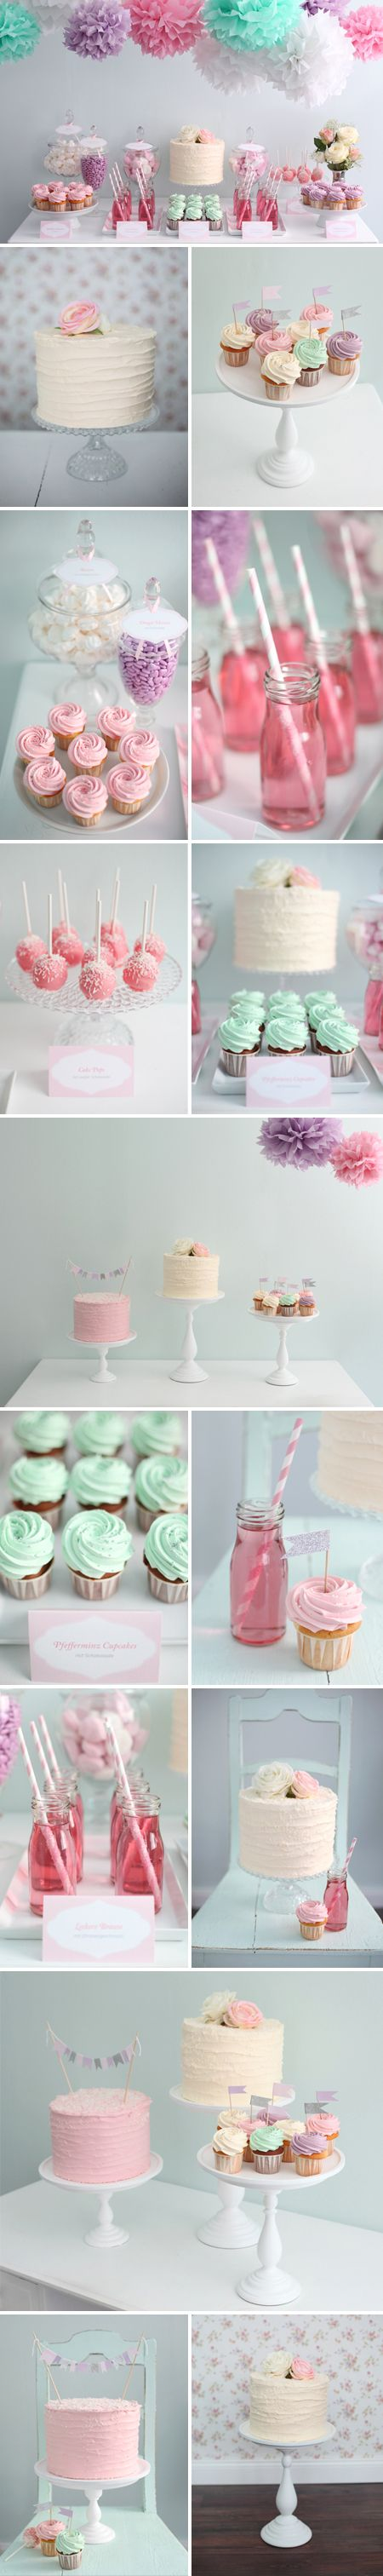 Pastel party ideas.